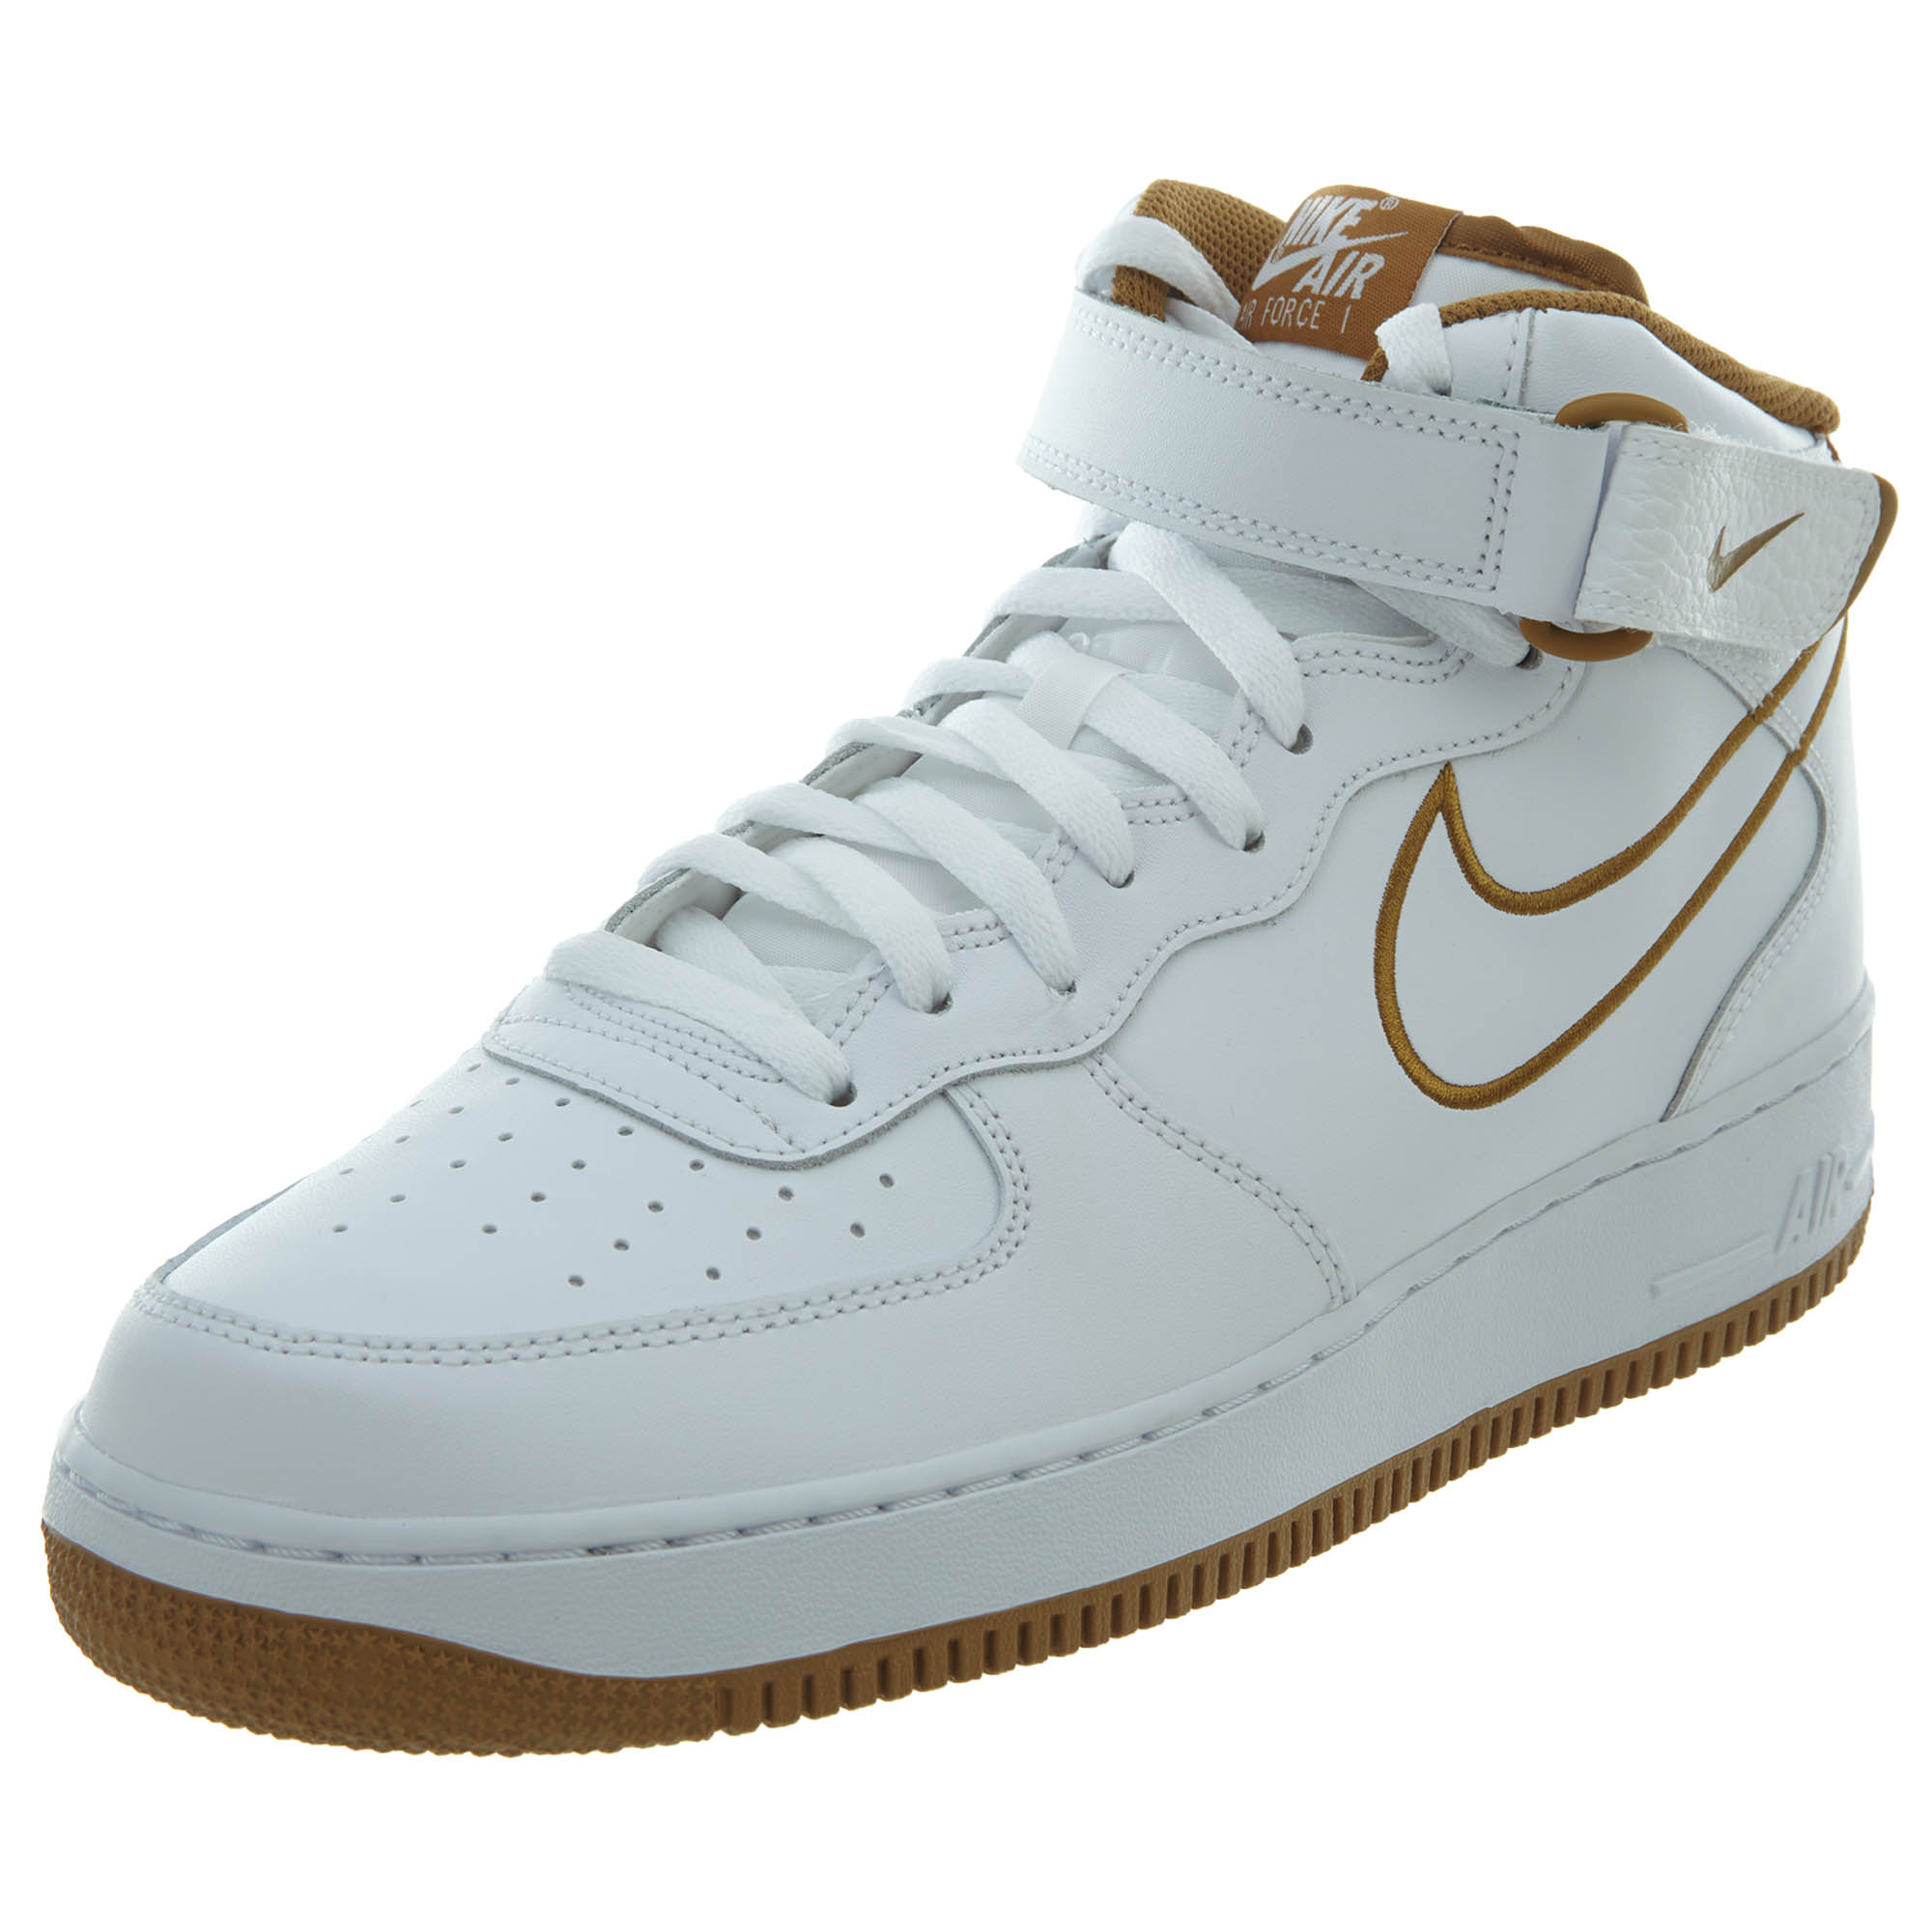 wholesale dealer 35305 6e6e5 Details about Nike Mens Air Force 1 Mid  07 Leather Running Shoes AQ8650-101